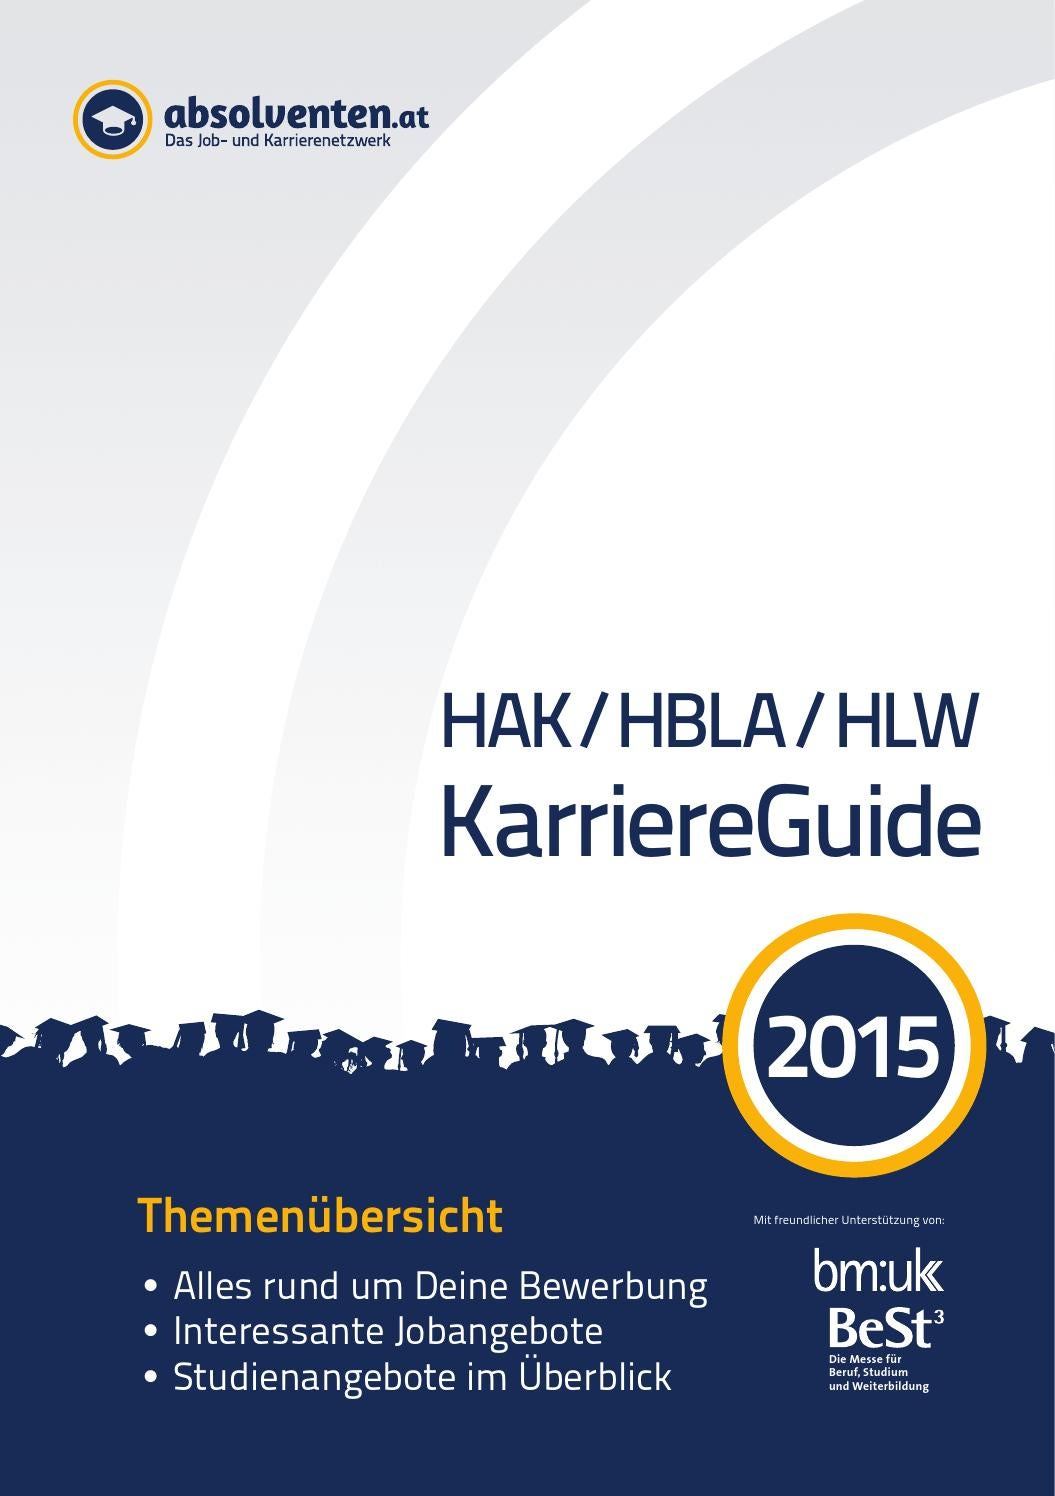 HAK / HBLA / HLW KarriereGuide 2015 by Business Cluster Network GmbH - issuu